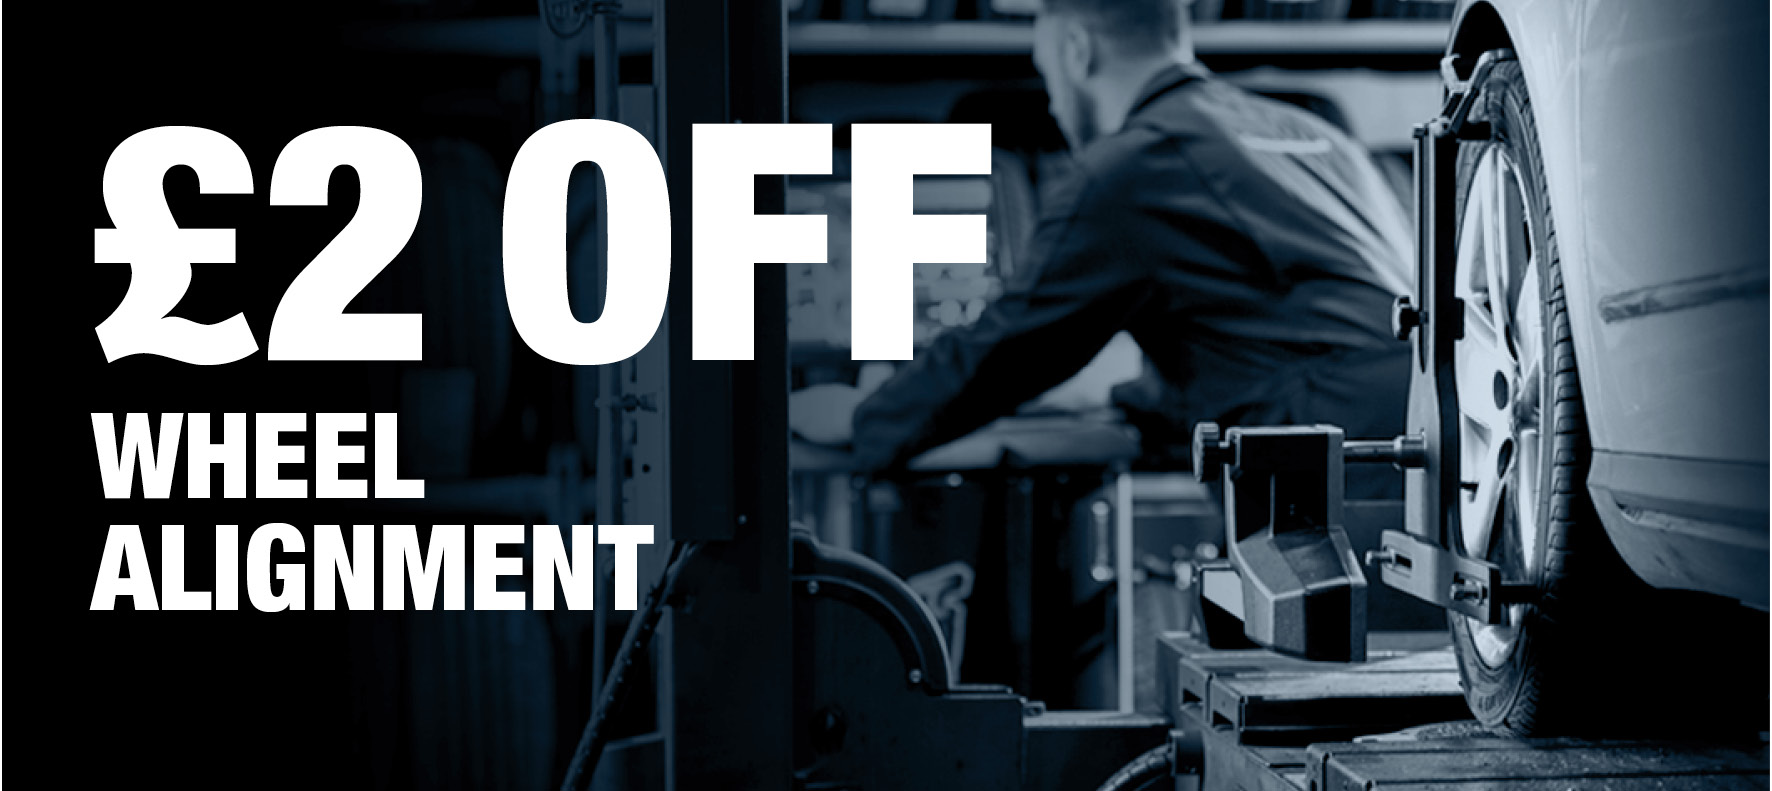 Save £2 on Wheel Alignment at Formula One Autocentres